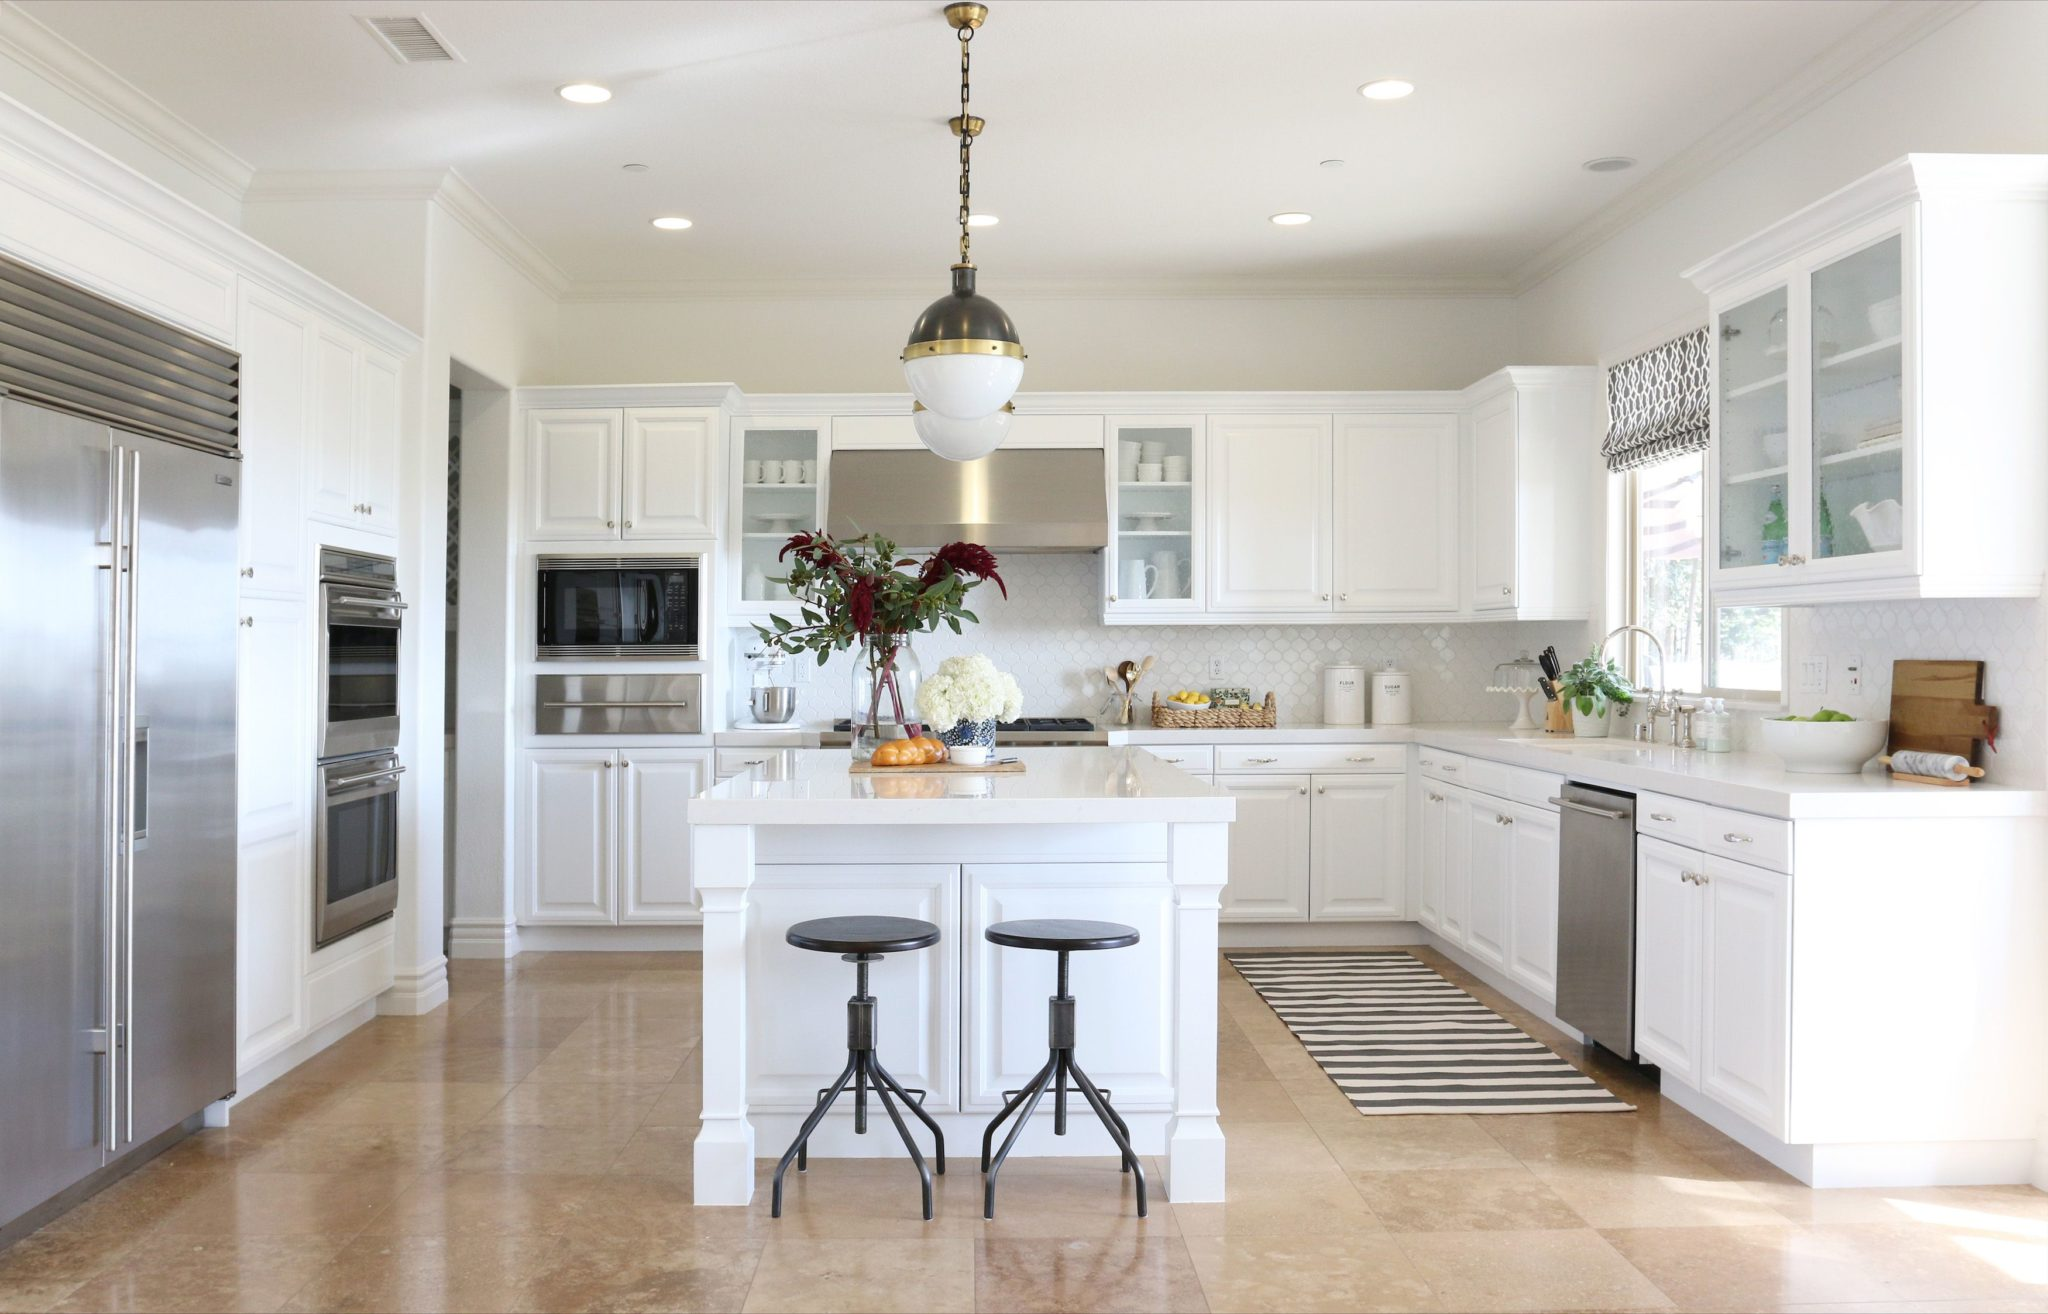 10 Best Antique White Cabinets Enhance Your Kitchen